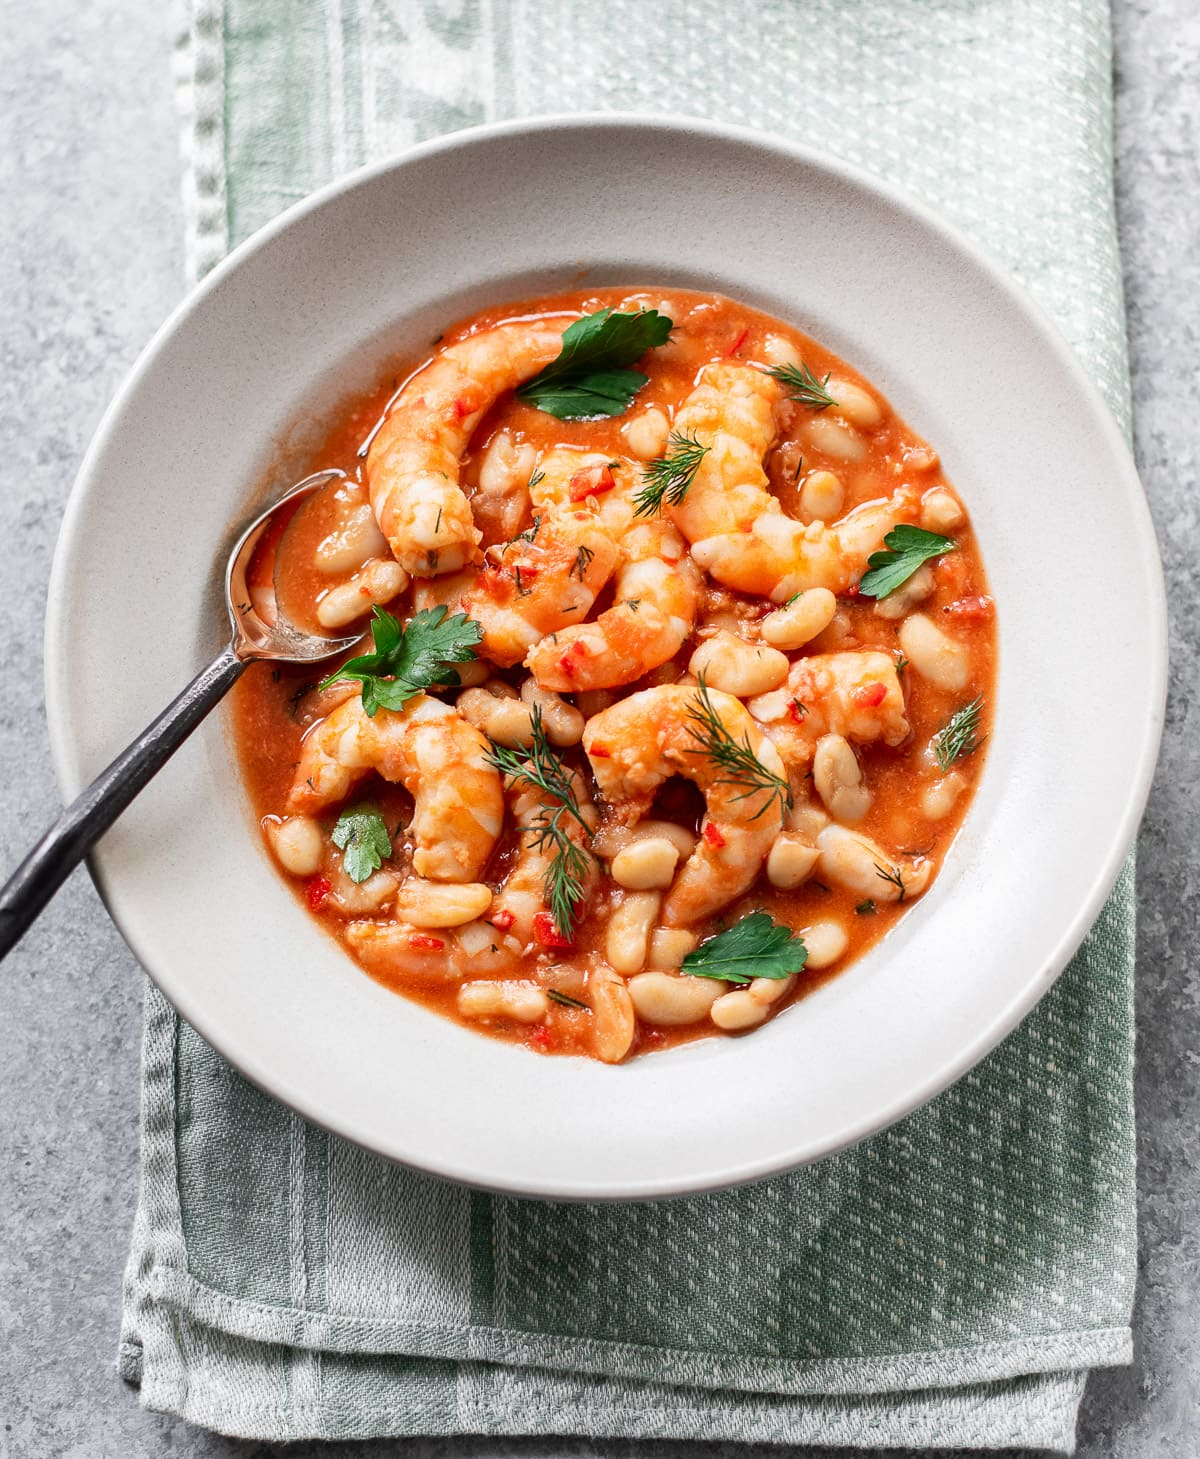 15-minute Spicy Shrimp and Cannellini Beans